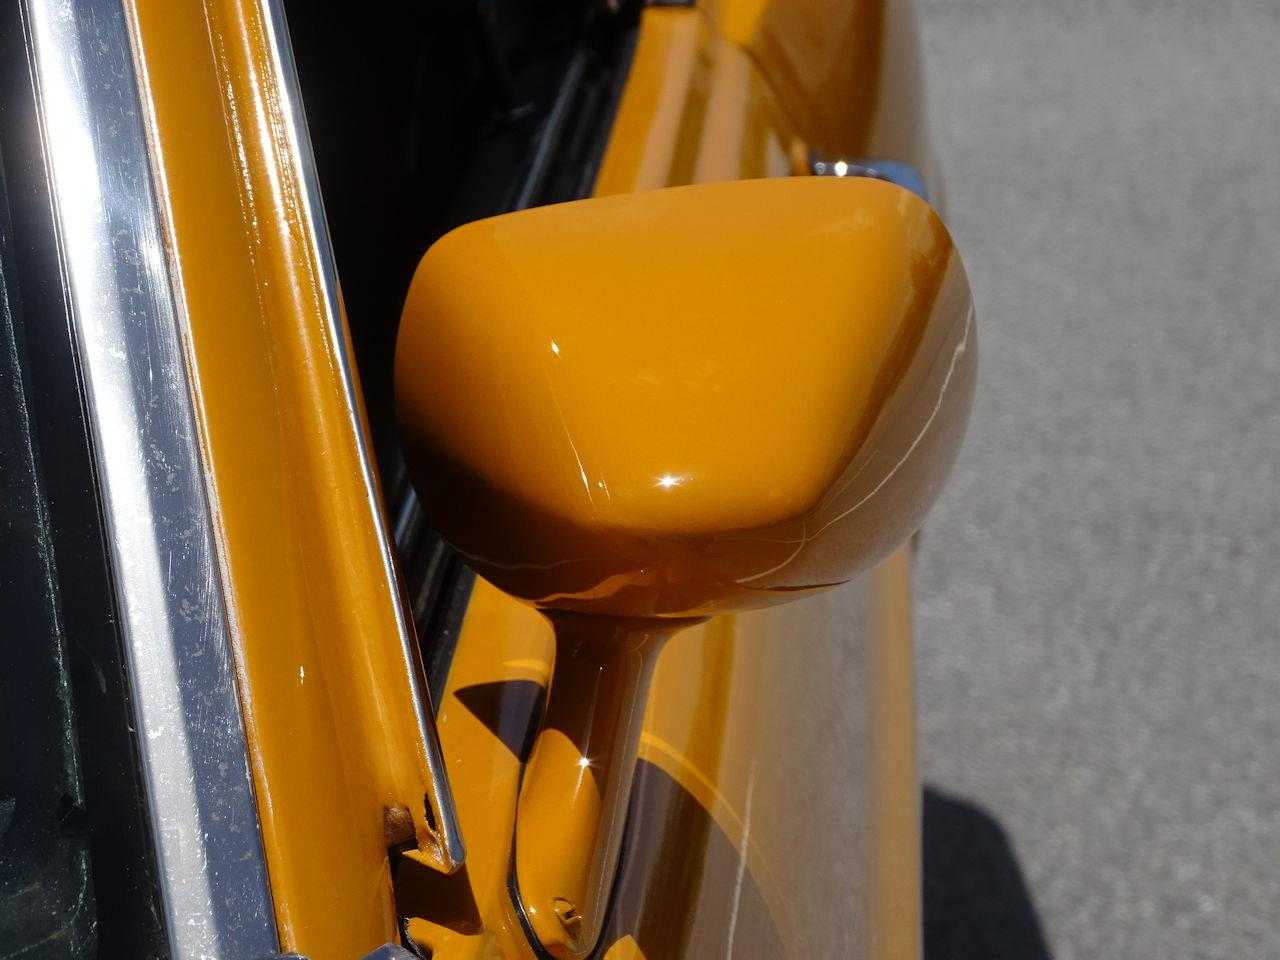 Ford Mustang Fastback boss 302 1970 shaker scoop prix tout compris